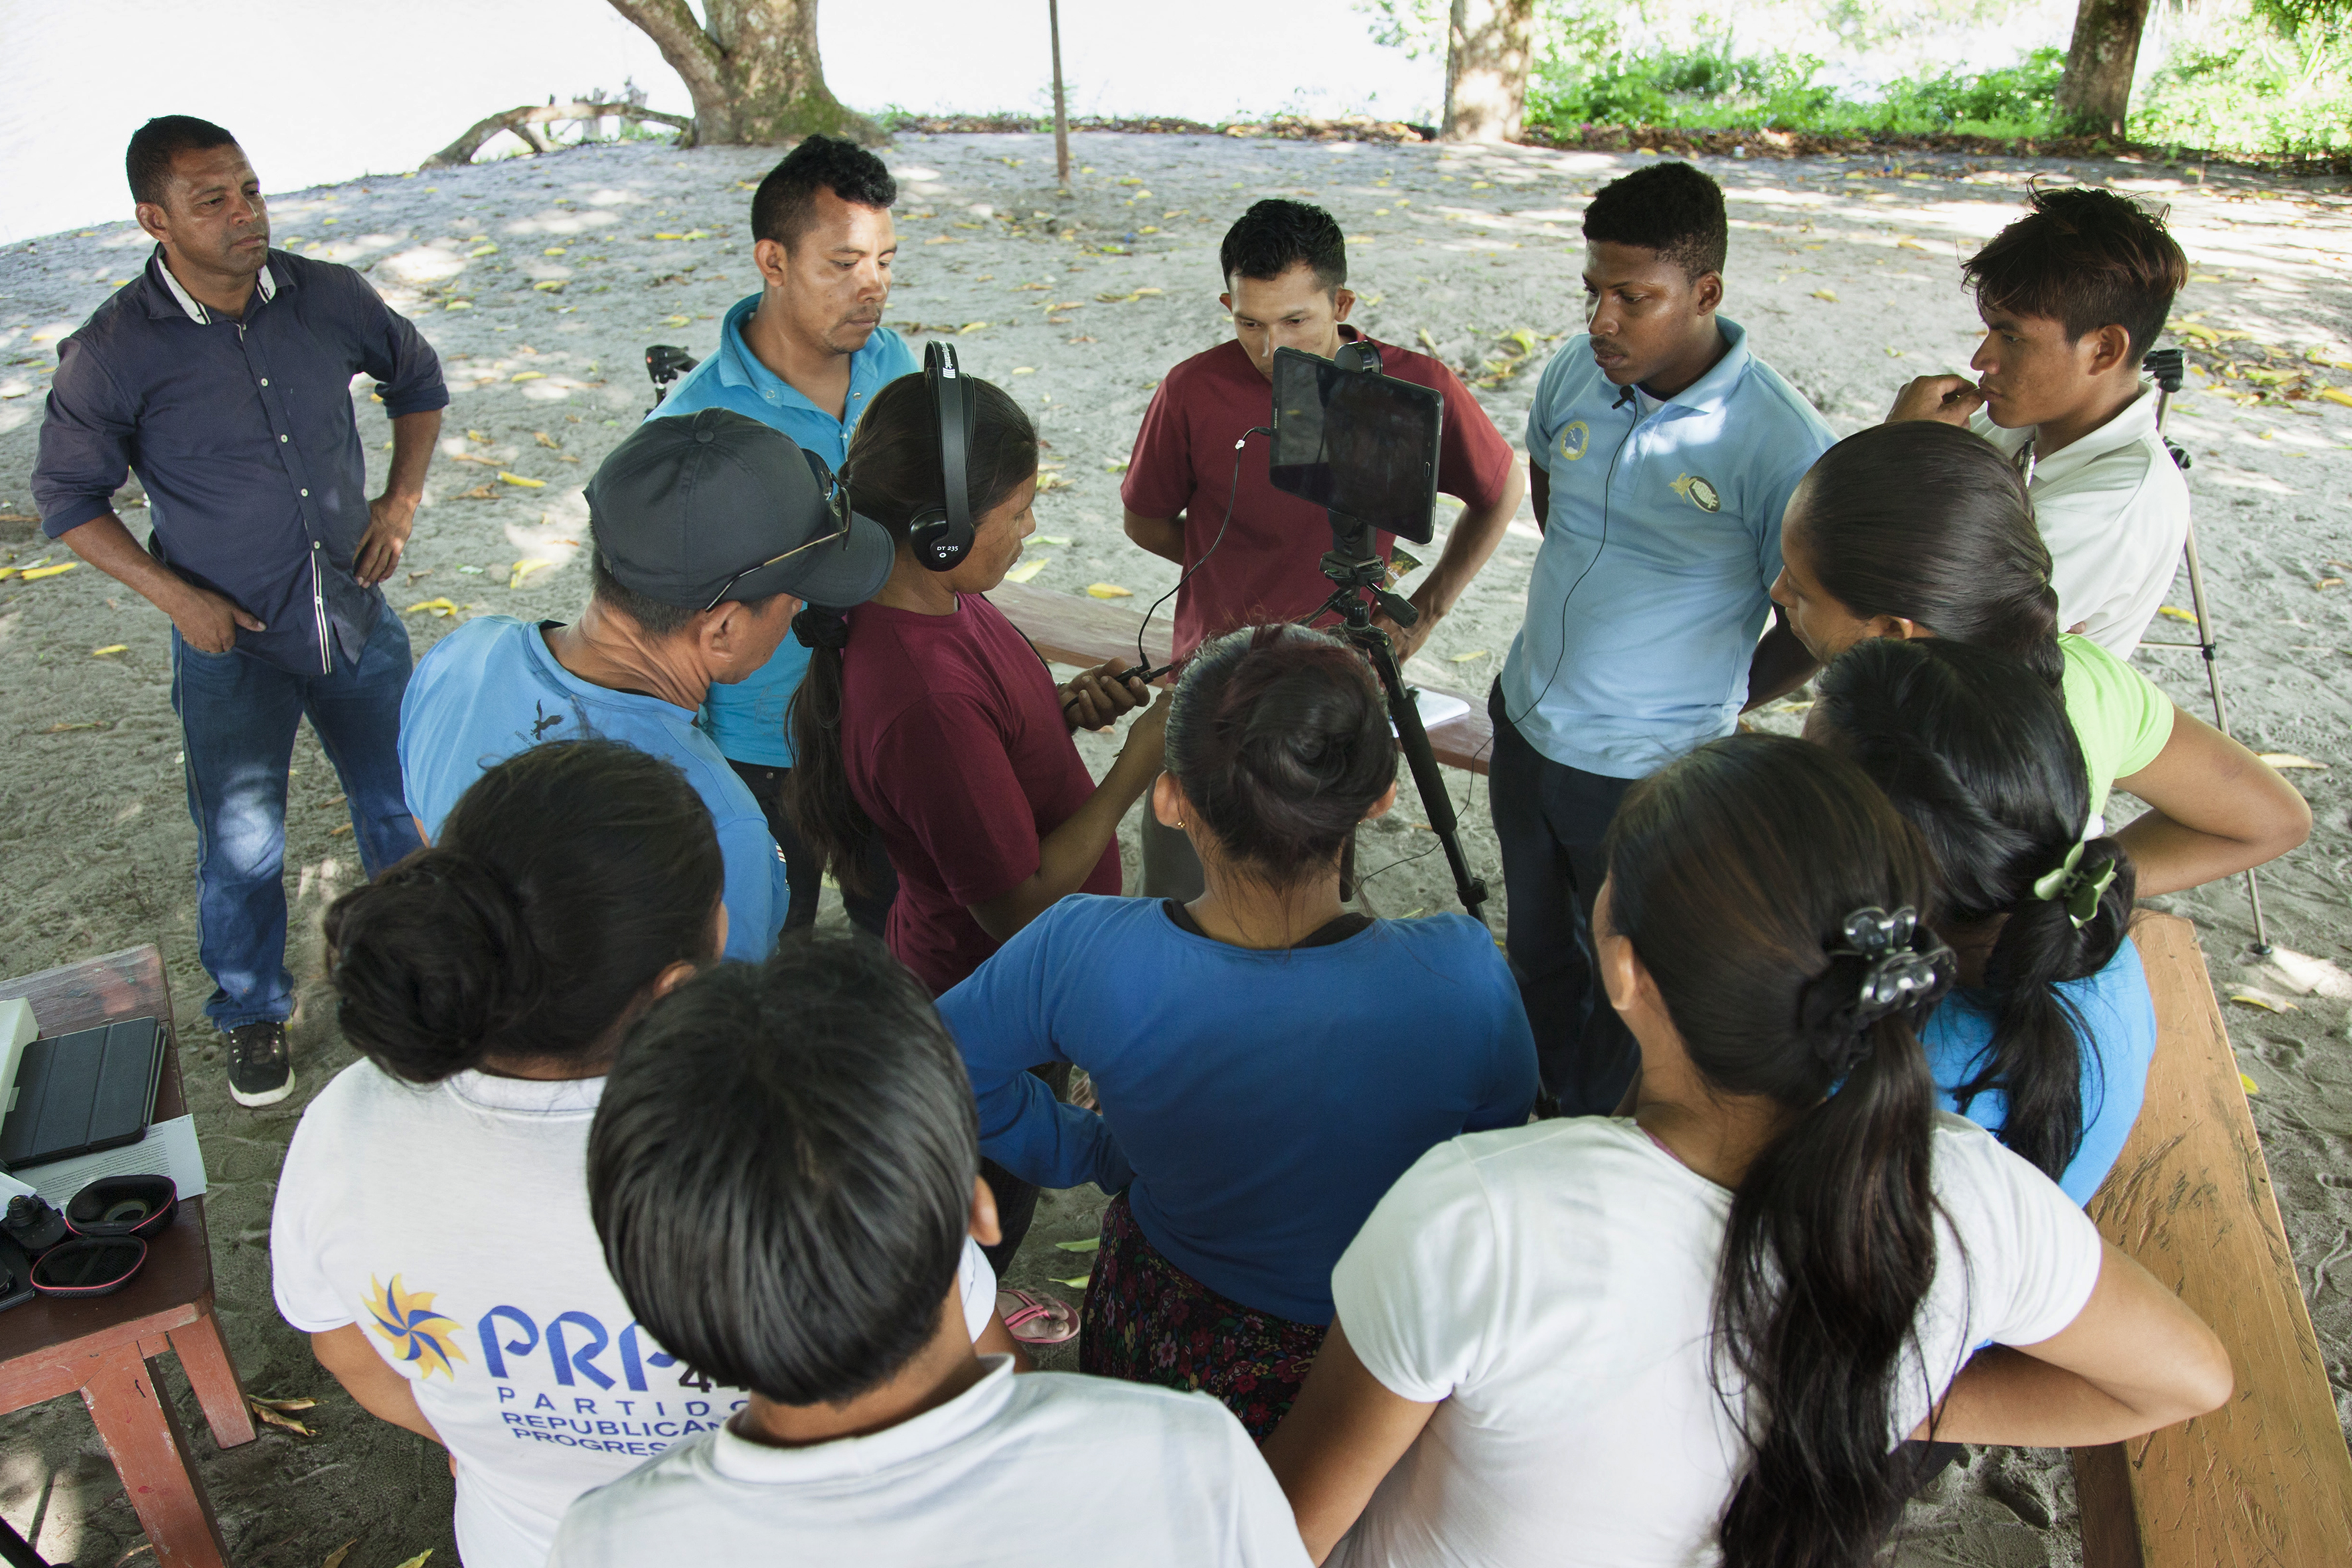 A group of Guayanese people doing a participatory video session